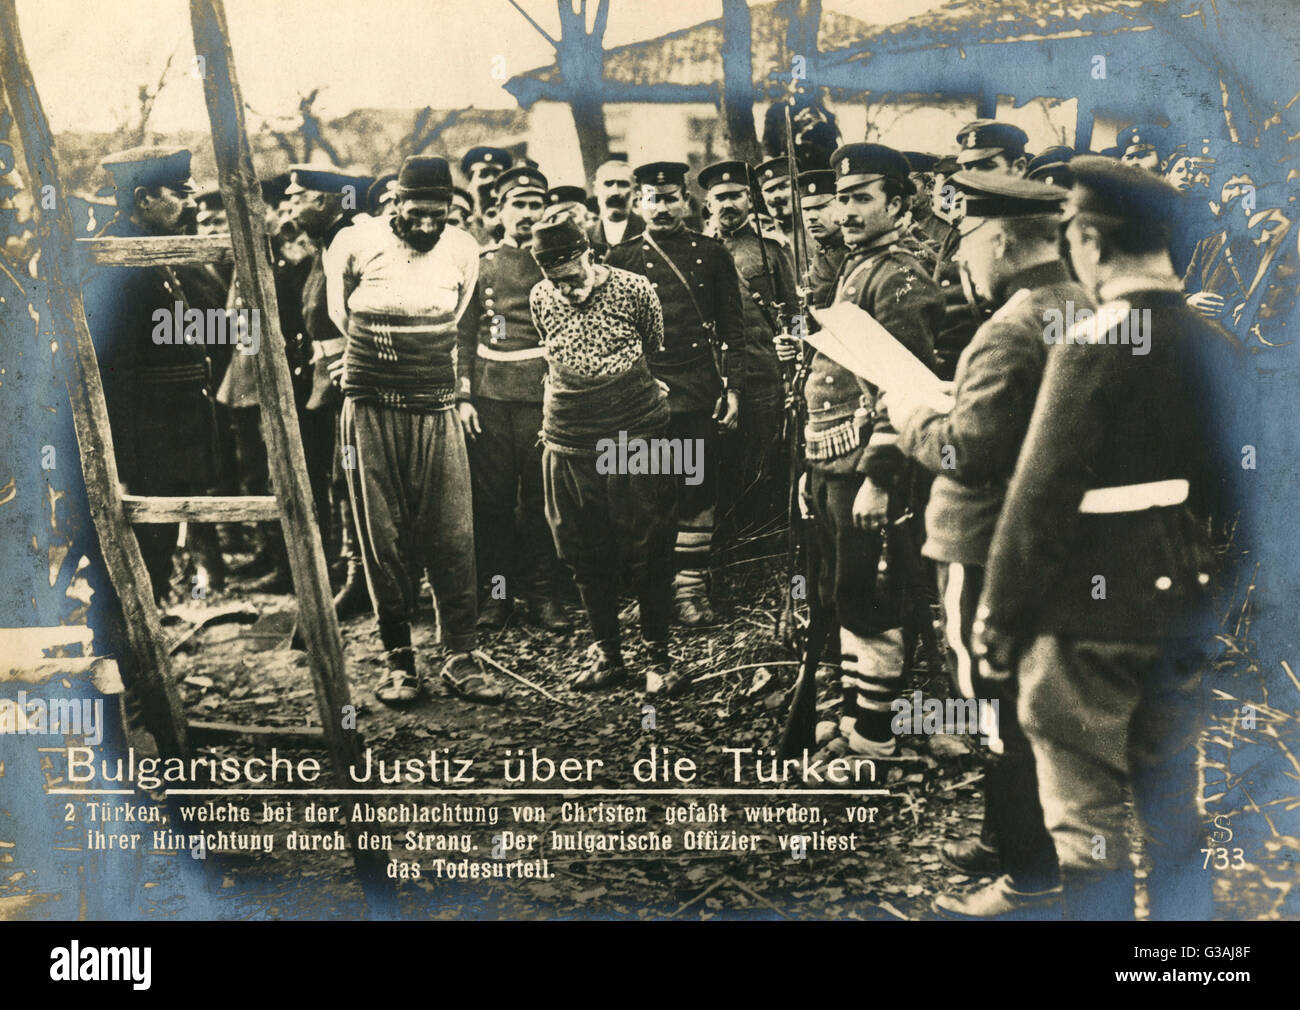 Bulgarian judiciary over the Turks following the Balkan Wars of 1912-13.    Turks, who were caught in the slaughter - Stock Image